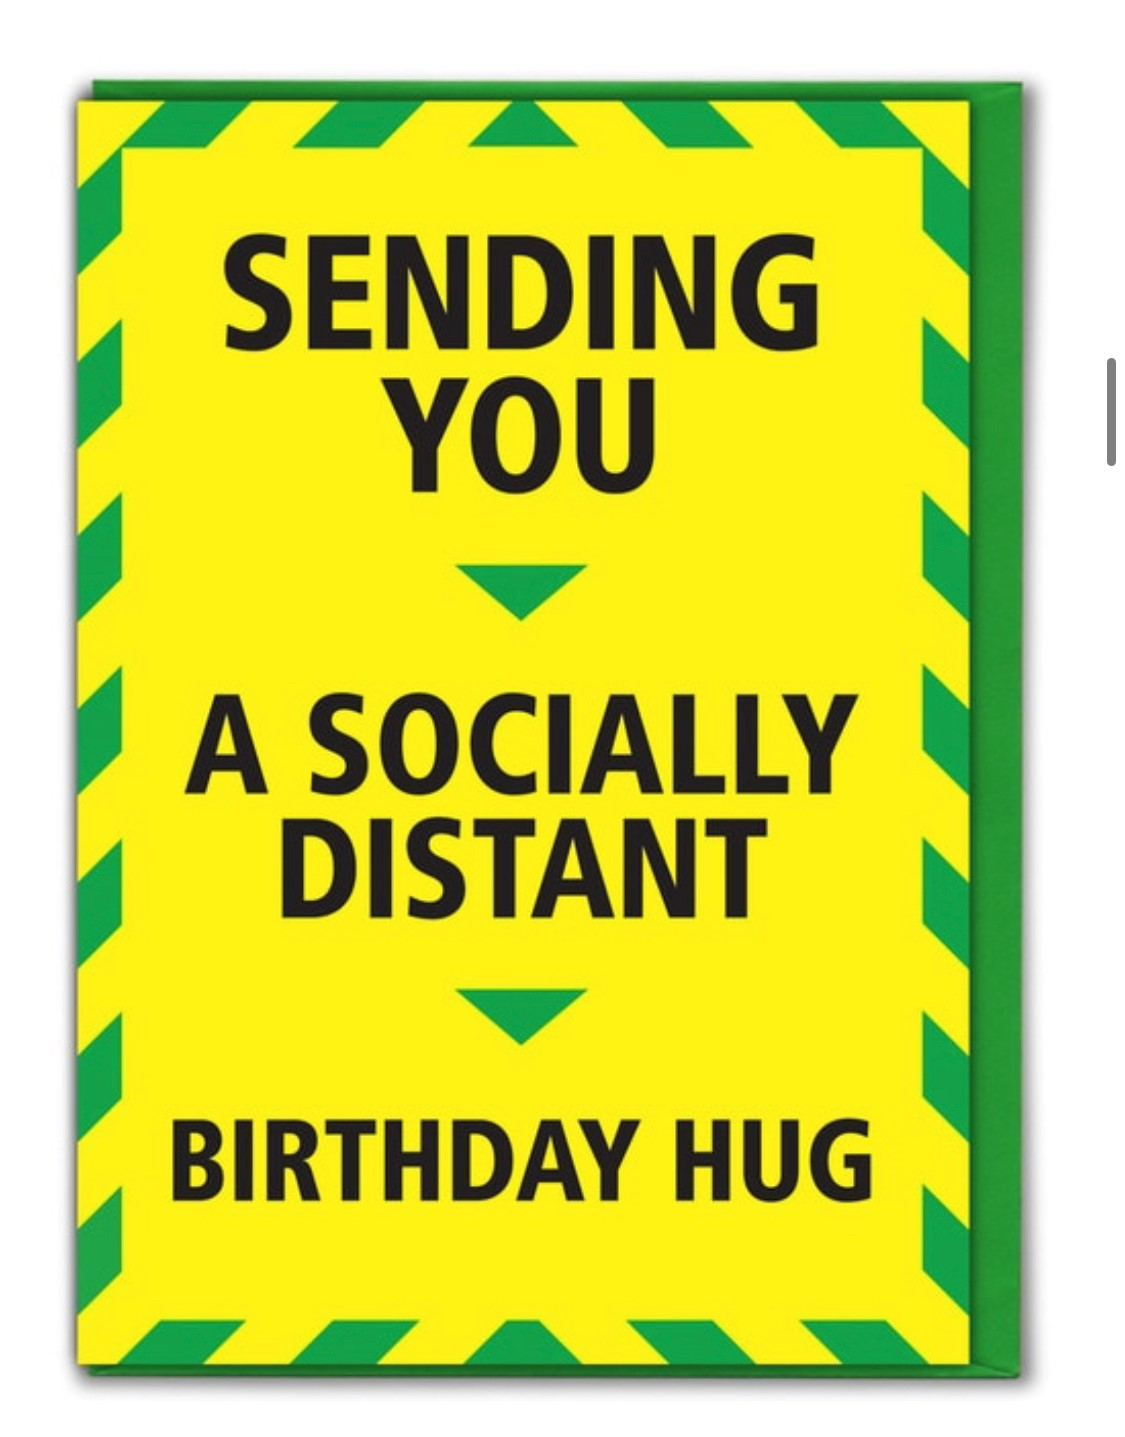 'Socially distant birthday hug' Card